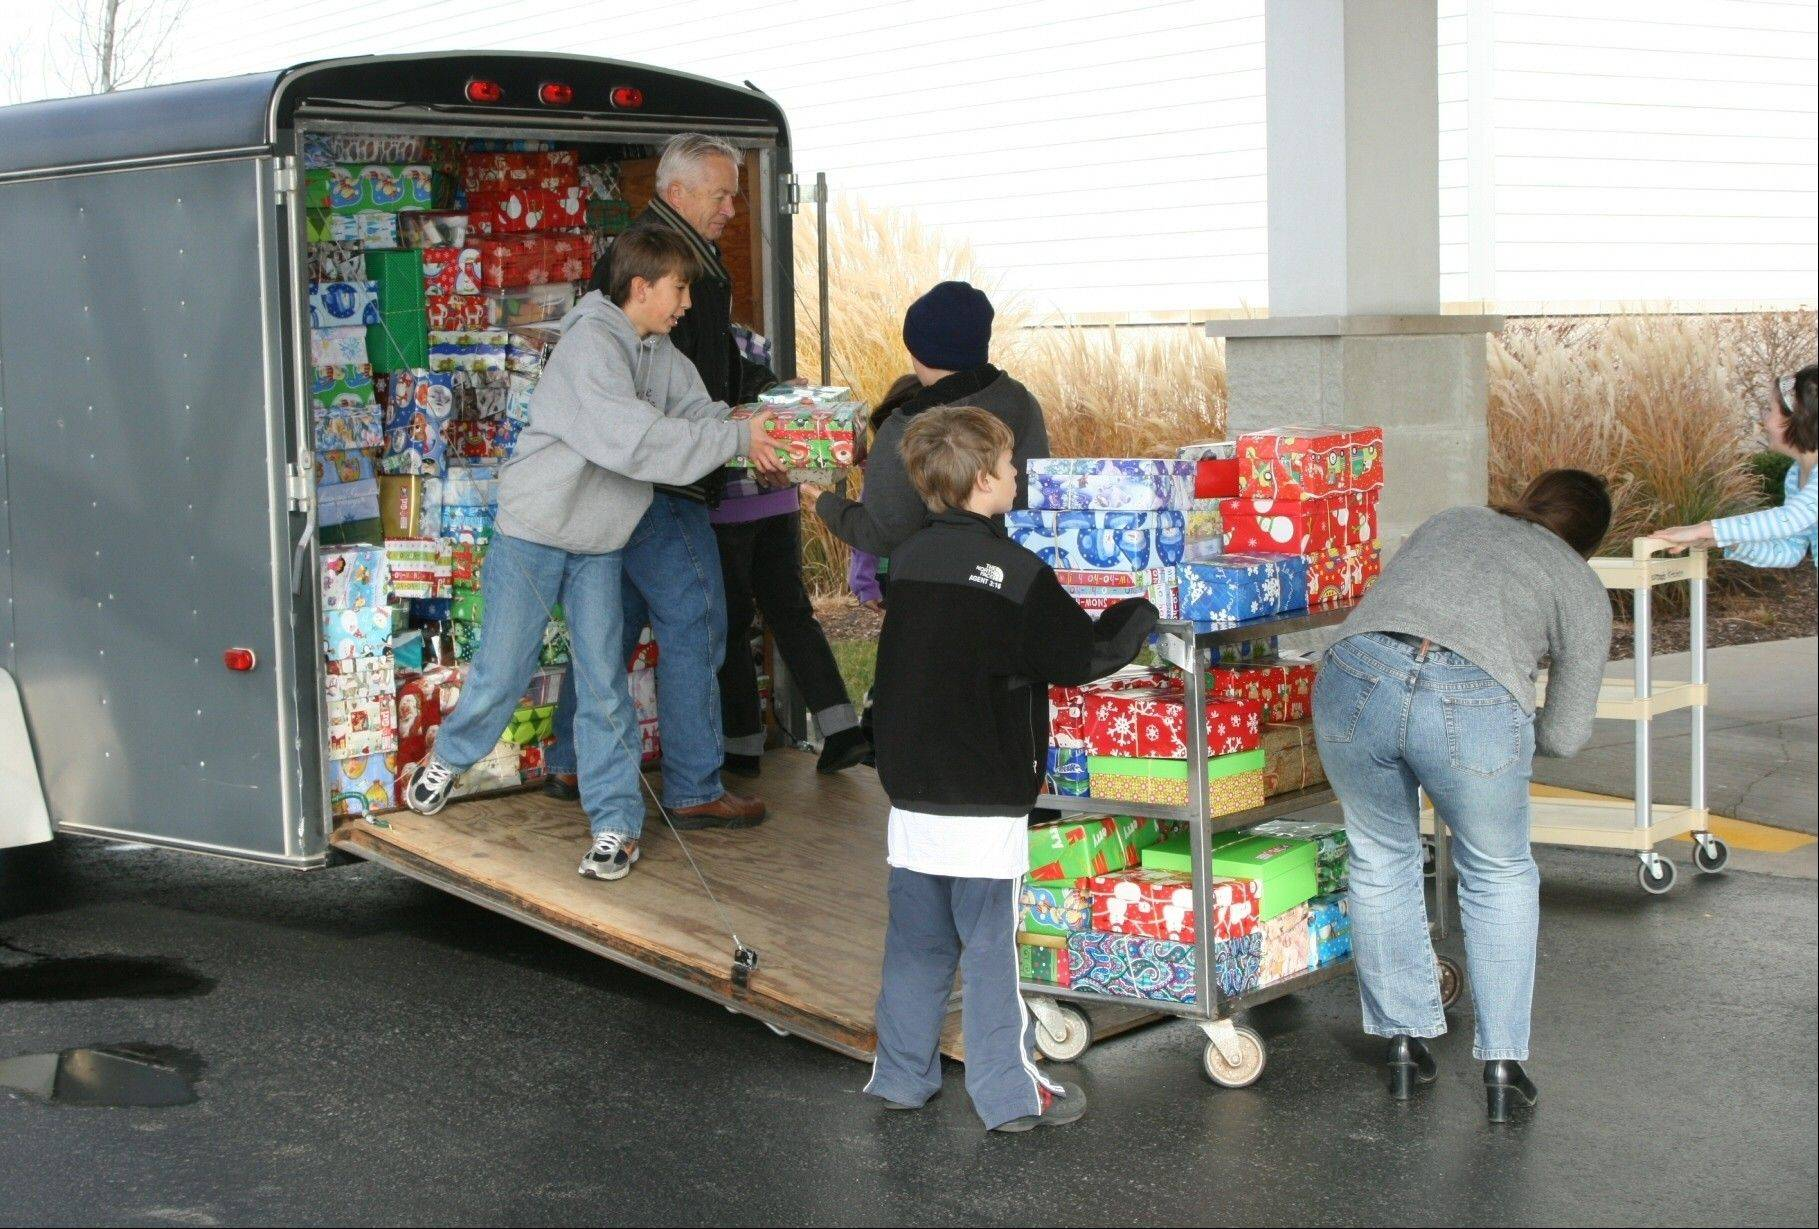 Volunteers for Operation Christmas Child move shoe box gifts containing supplies for needy children at the collections center at Crossroads Church in Grayslake. (Photo taken by Volunteer Area Coordinator Connie Pfeifer)